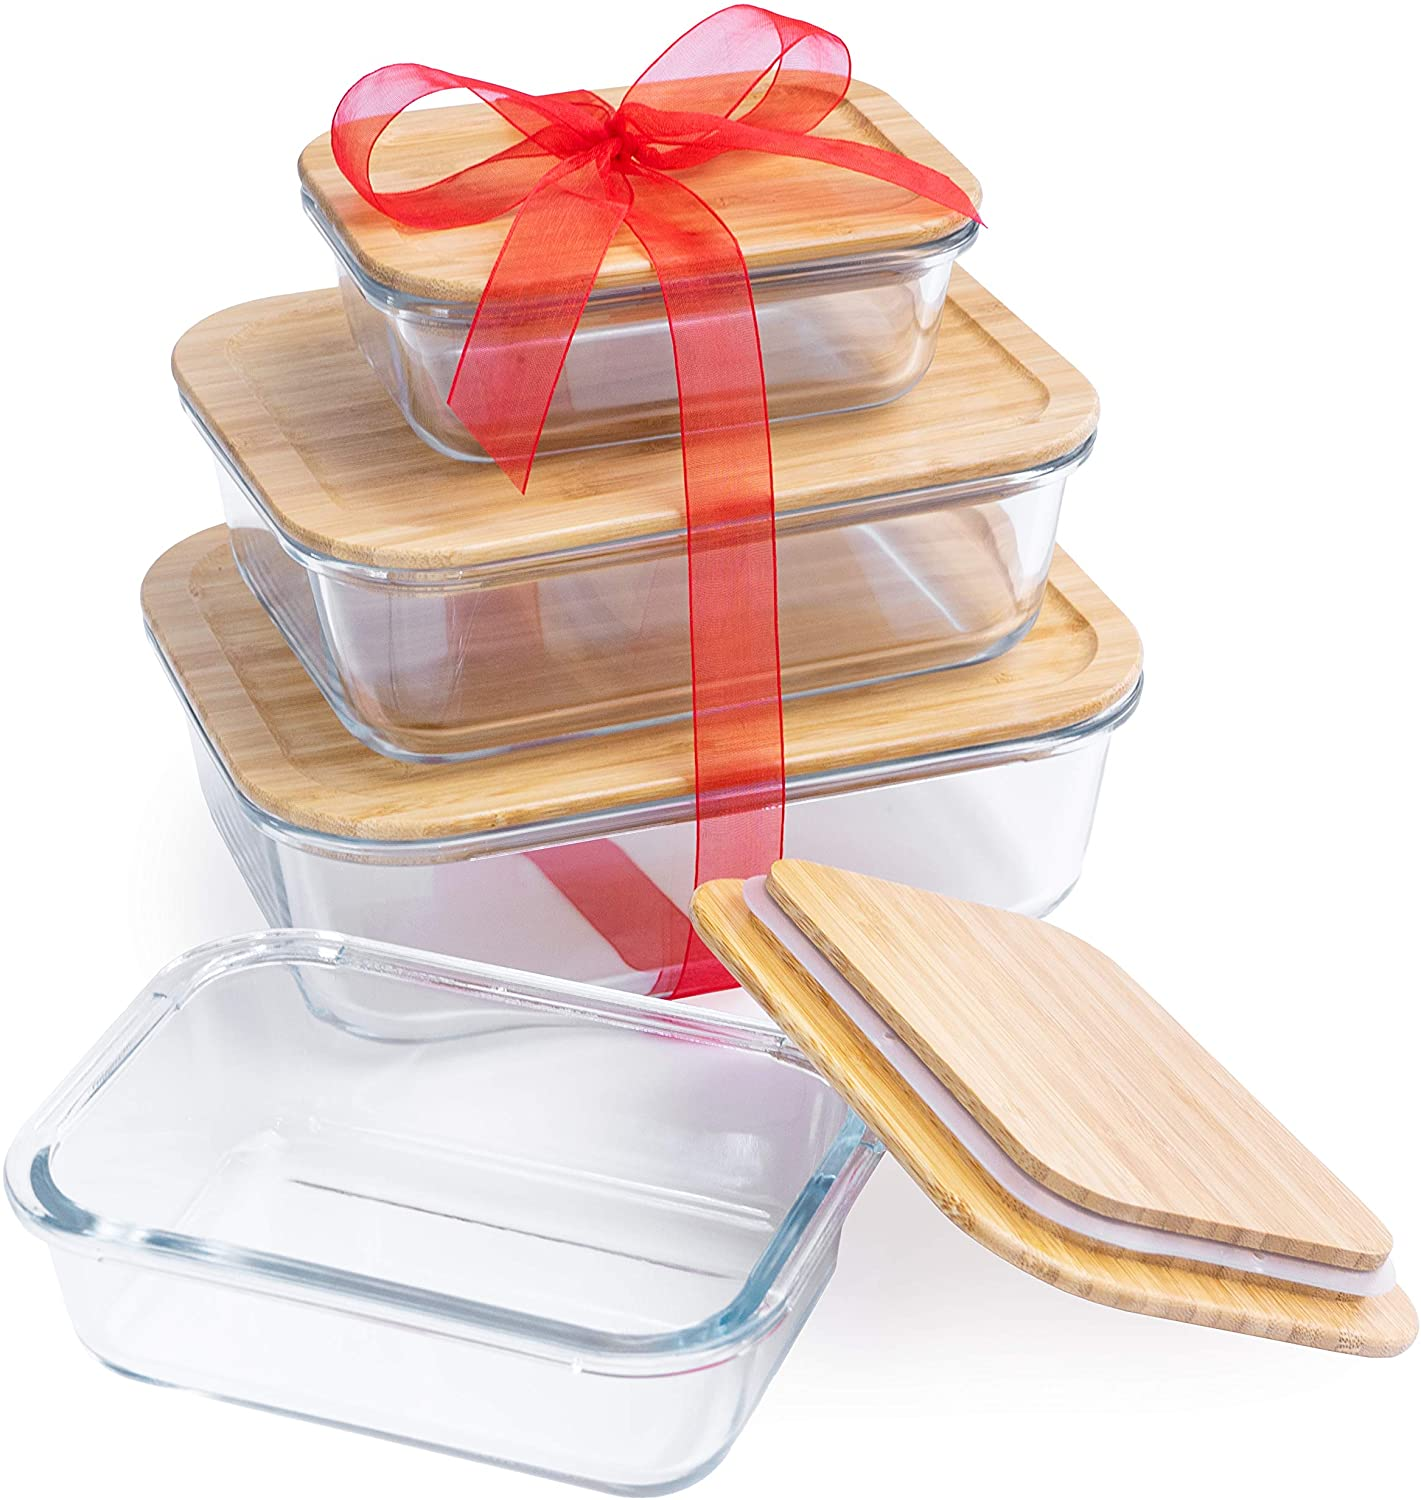 Tenzo Glass Food Storage Containers with Bamboo Lids - Eco Friendly Glass Meal Prep Container for Kitchen Food Storage with Airtight Eco Lids and Nesting Glass Food Containers (Set of 4)